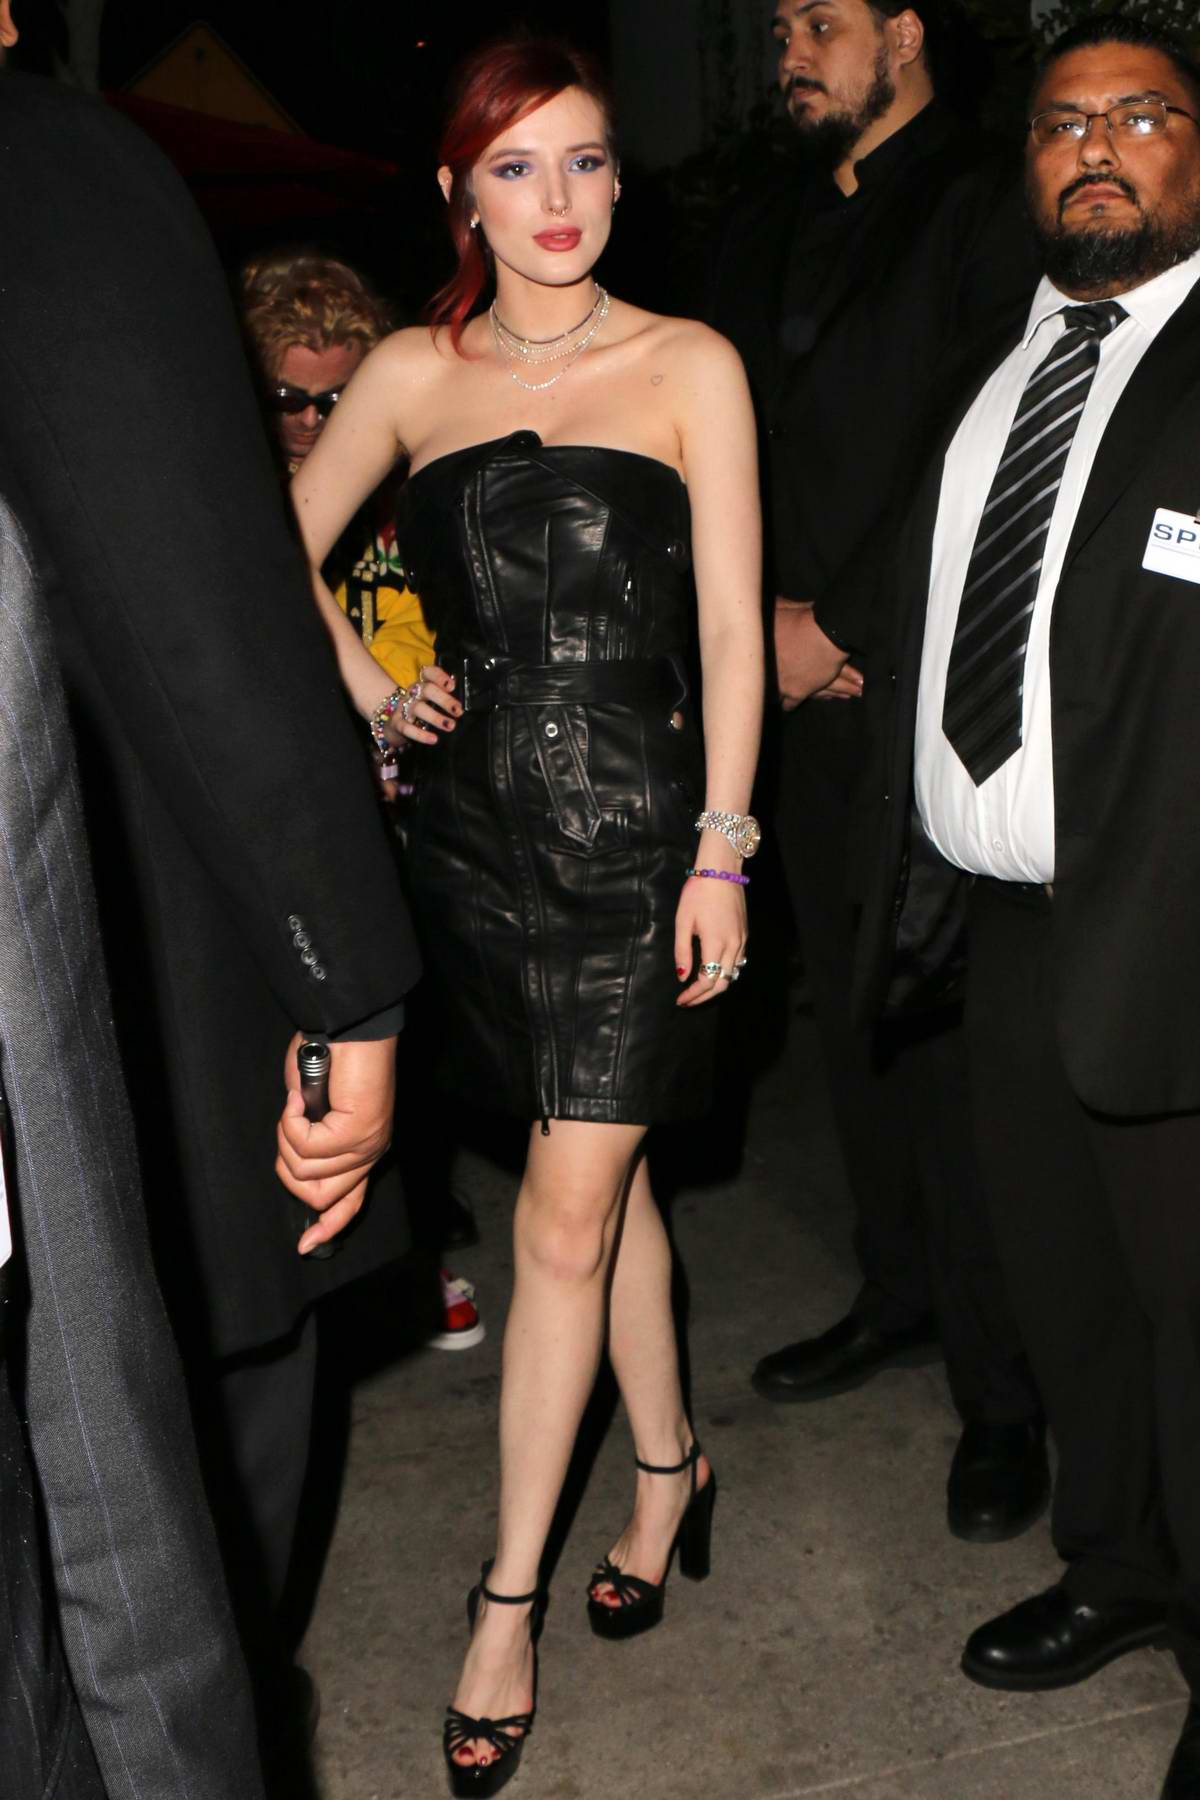 Bella Thorne and boyfriend Mod Sun arriving to the 'Midnight Sun' premiere after party at Avenue in Hollywood, Los Angeles